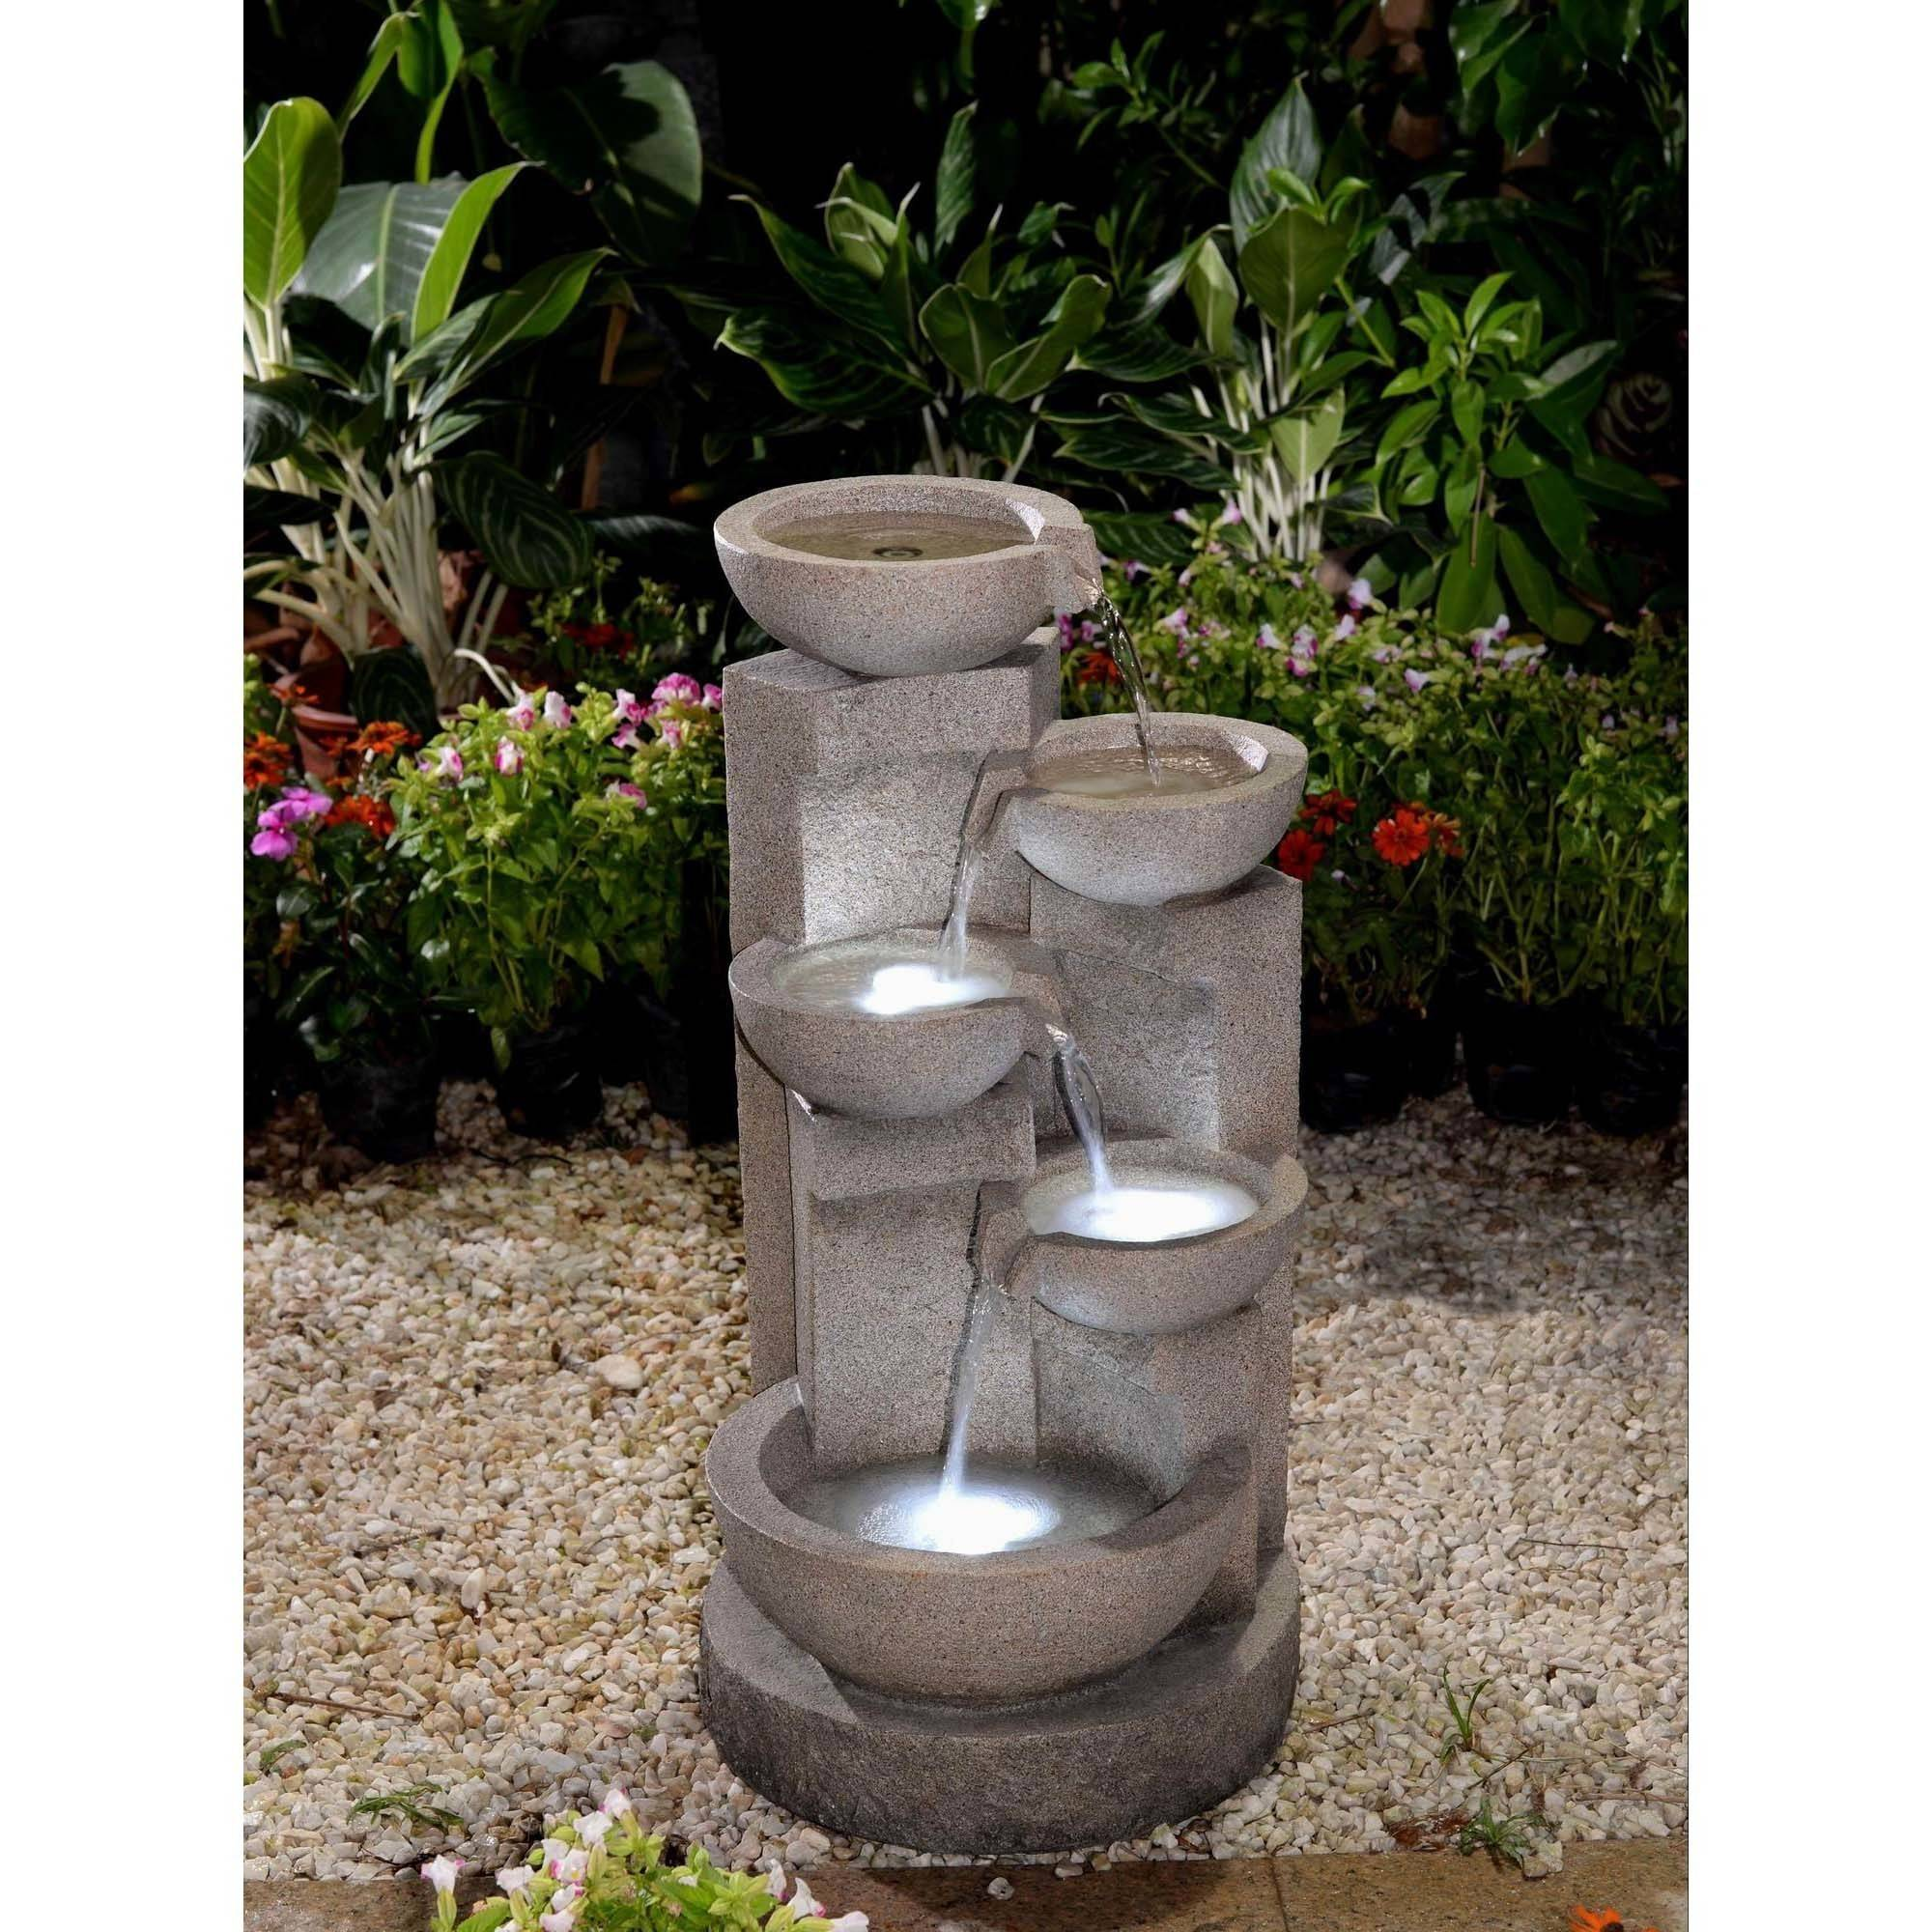 Better Homes and Gardens Contemporary Fountain by WINCHOICE CO LTD.